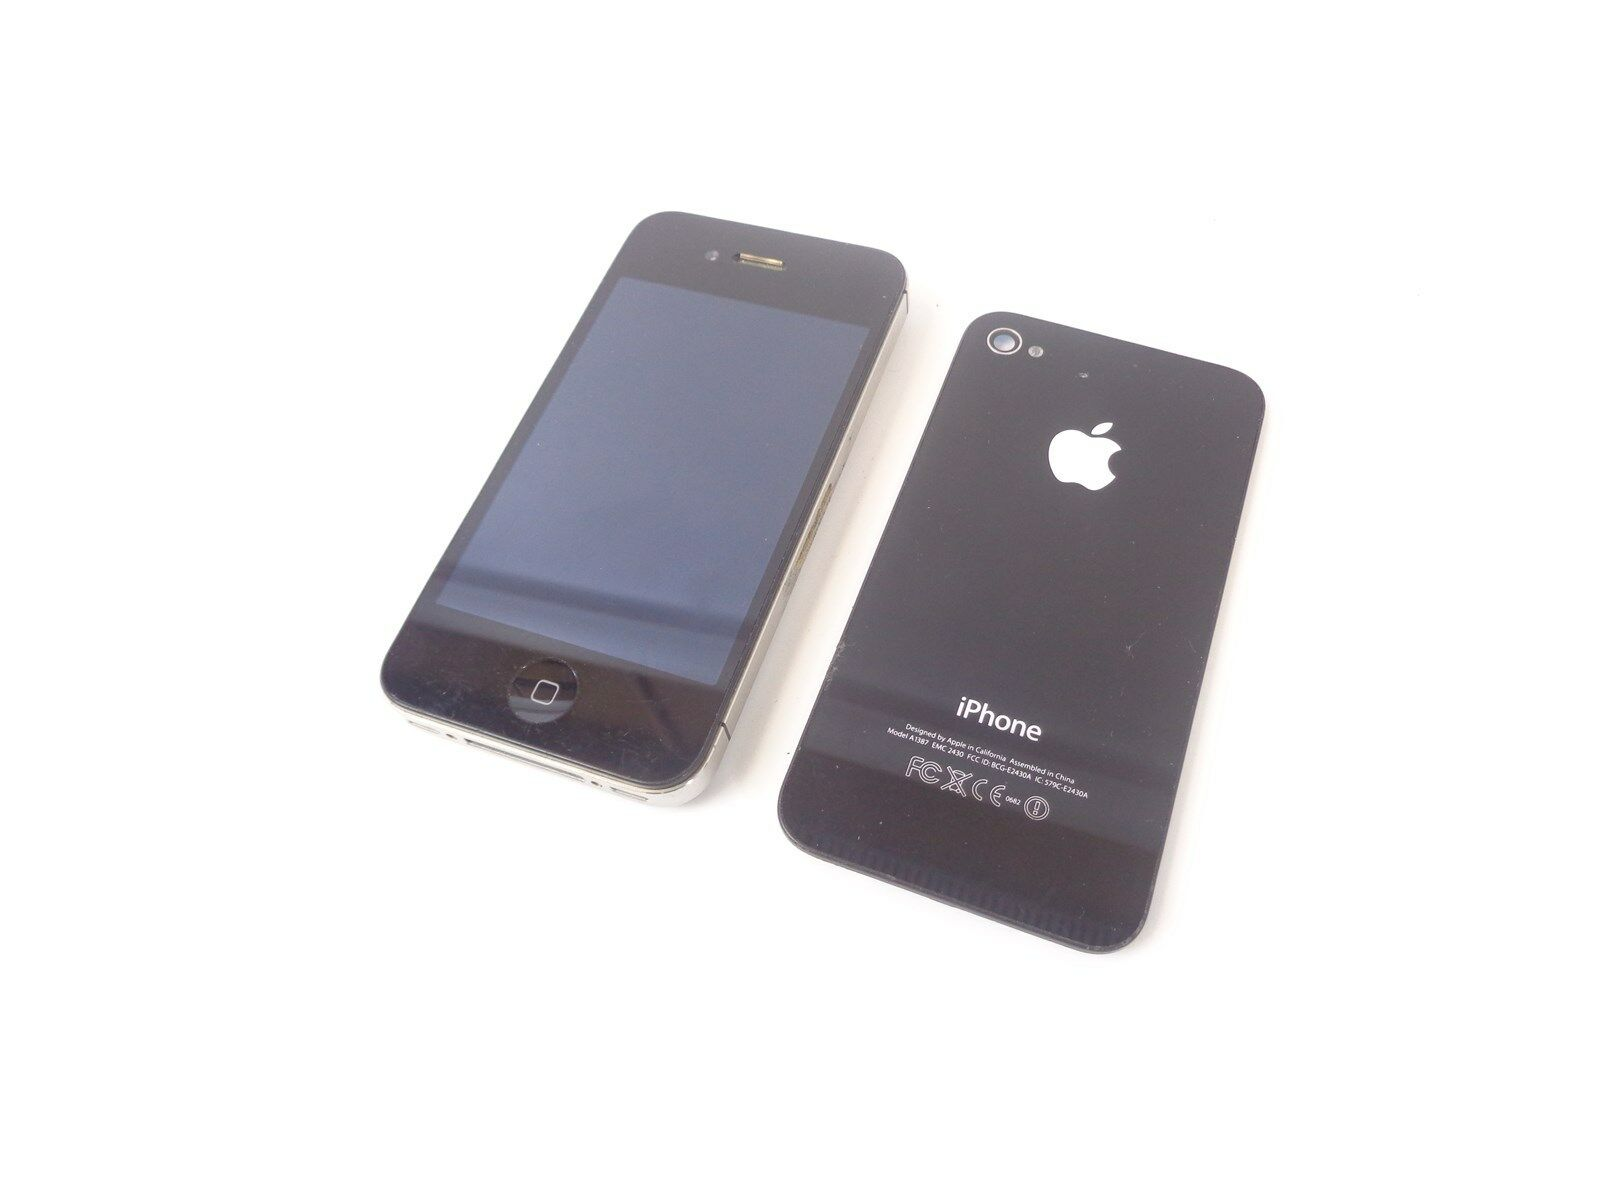 model a1387 iphone apple iphone 4s a1387 lcd screen amp battery amp no 12643